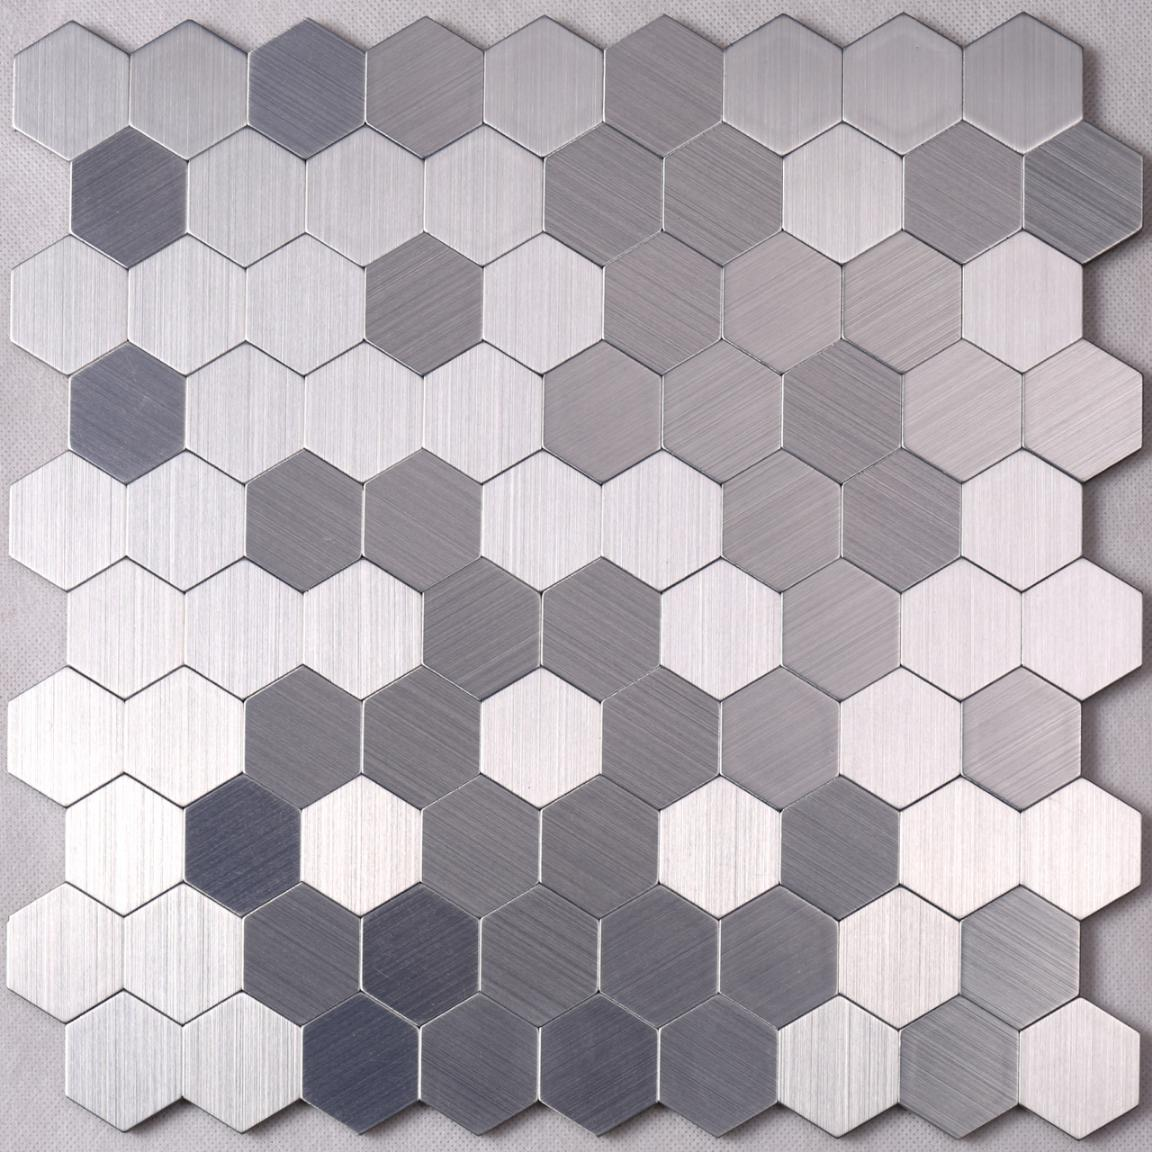 Heng Xing-Metallic Subway Tile Manufacturer, Metallic Bathroom Tiles | Heng Xing